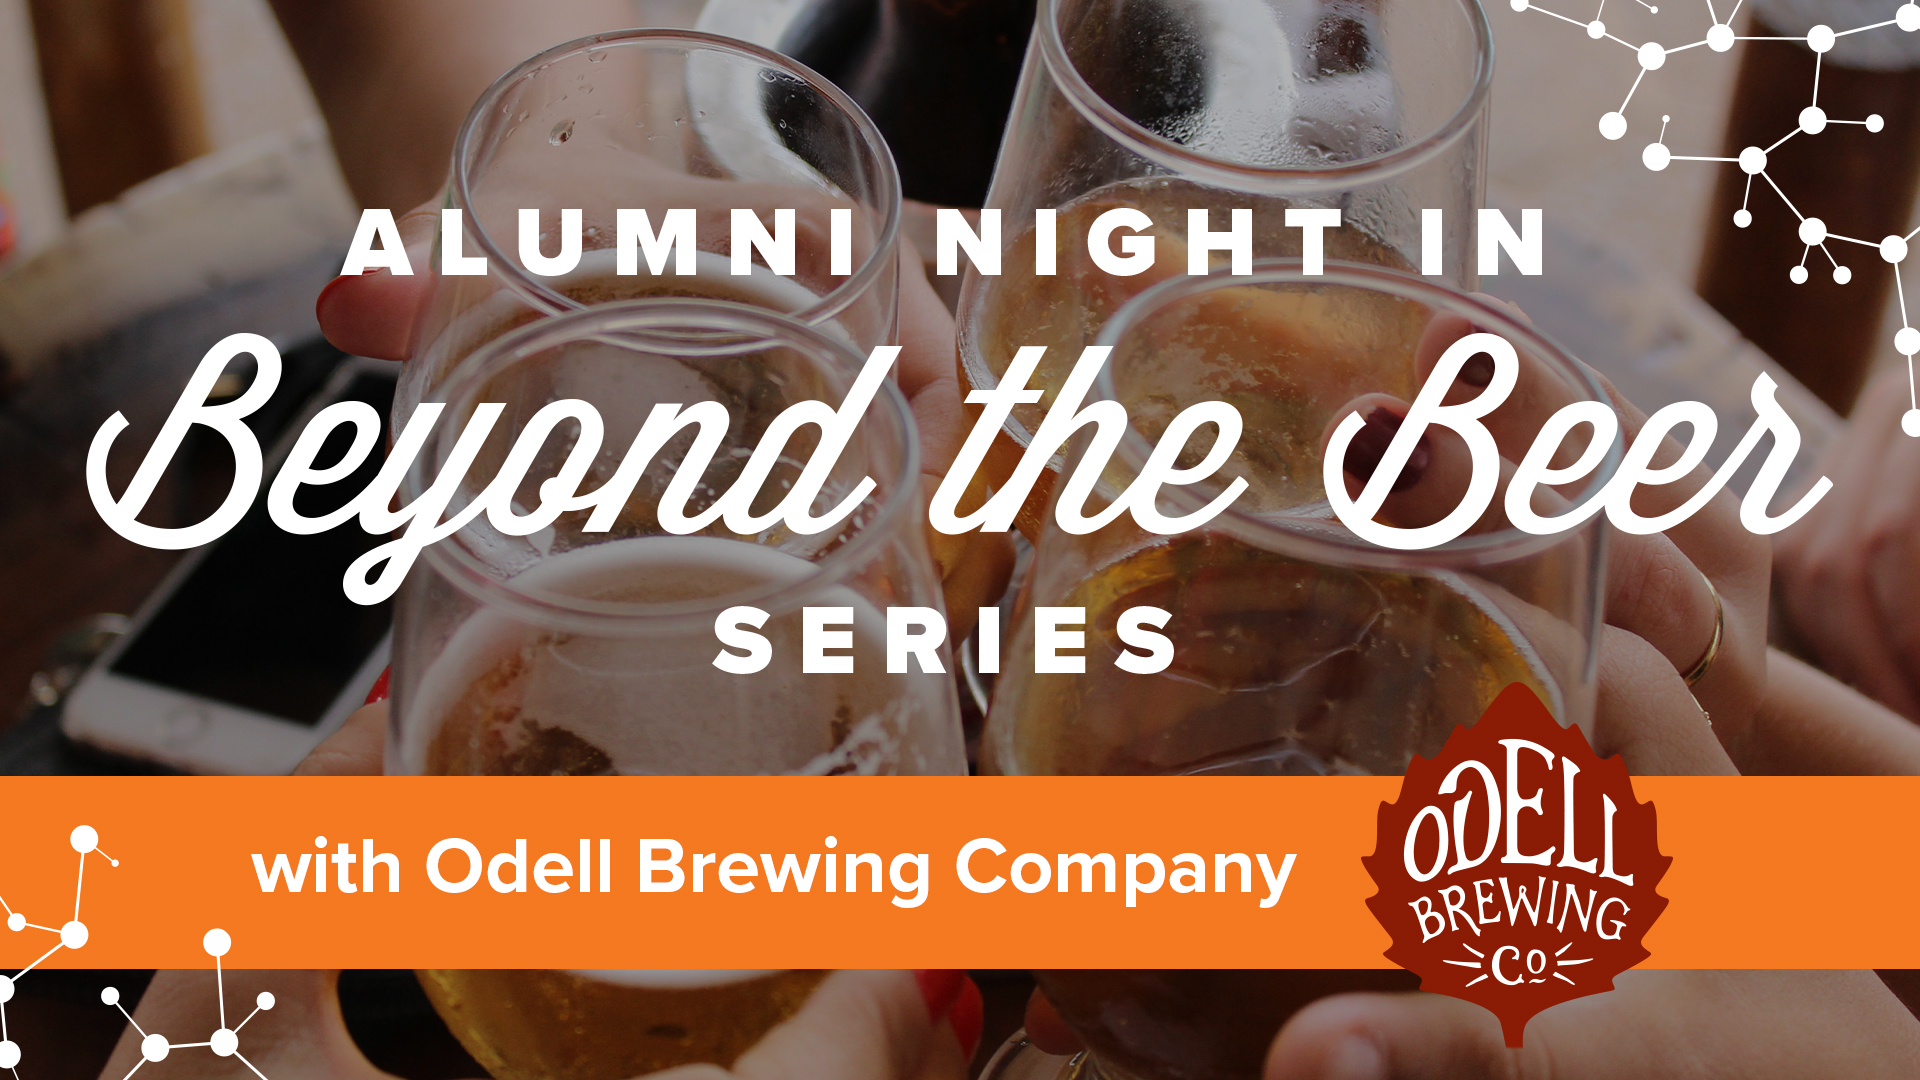 Image for Beyond the Beer Series: History of Odell Brewing Company webinar